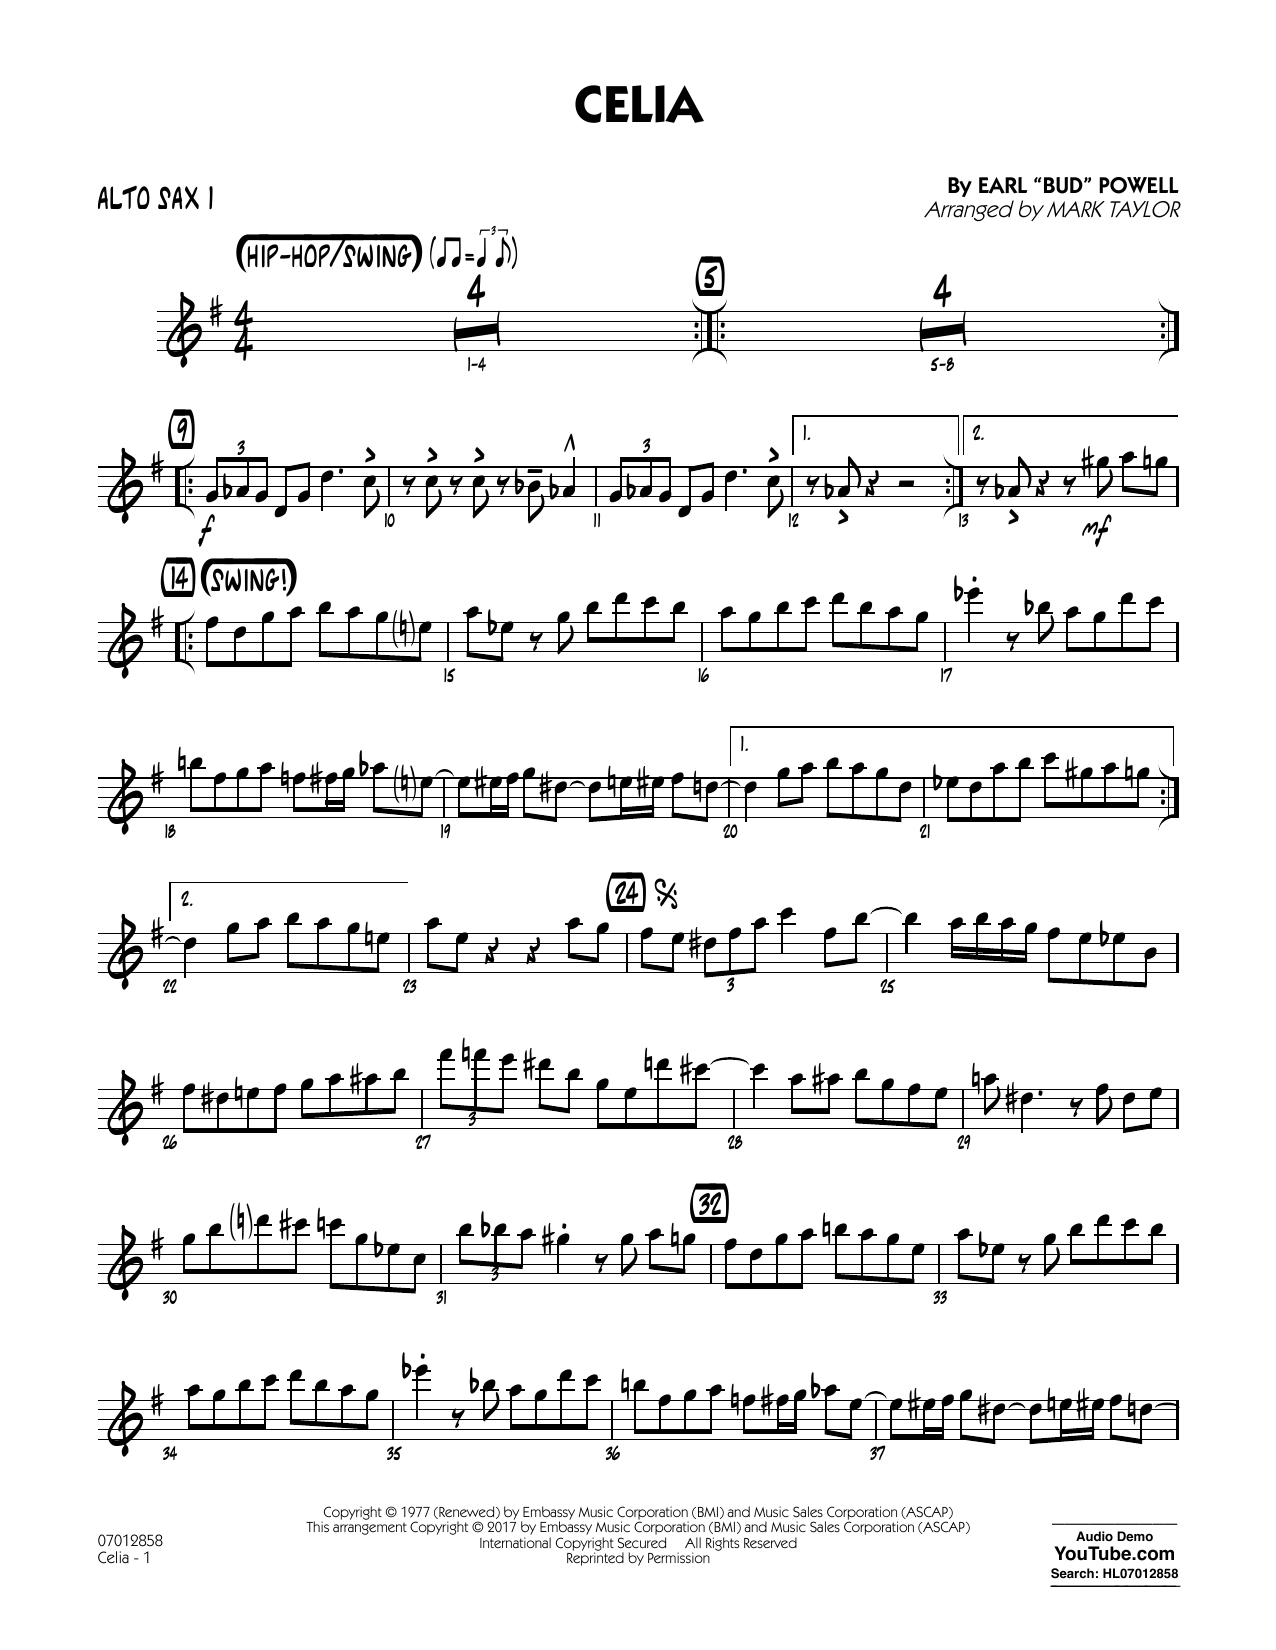 Celia - Alto Sax 1 Sheet Music